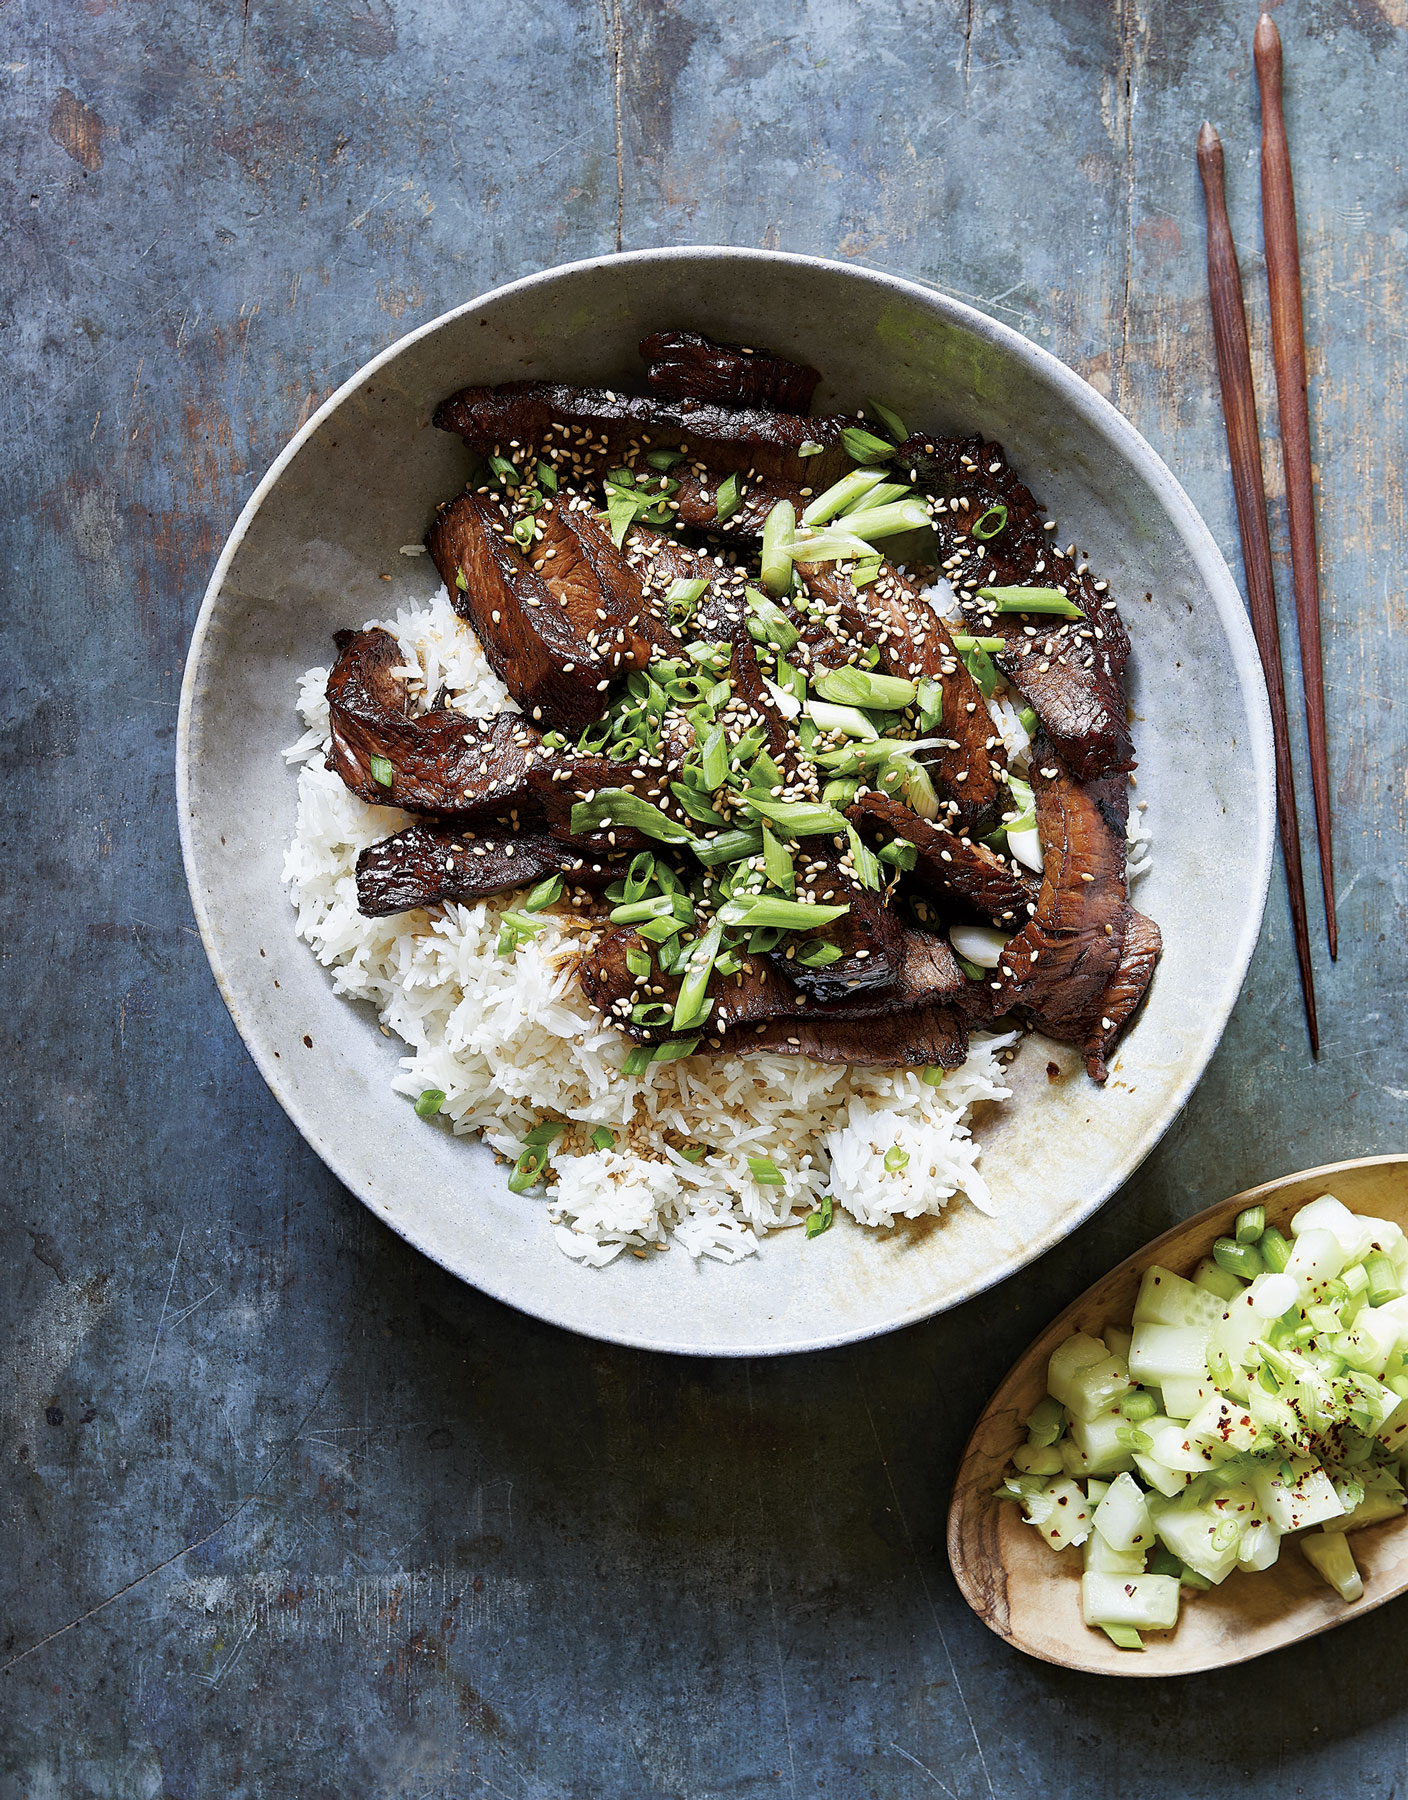 Joanna Gaines's Mom's Bulgogi